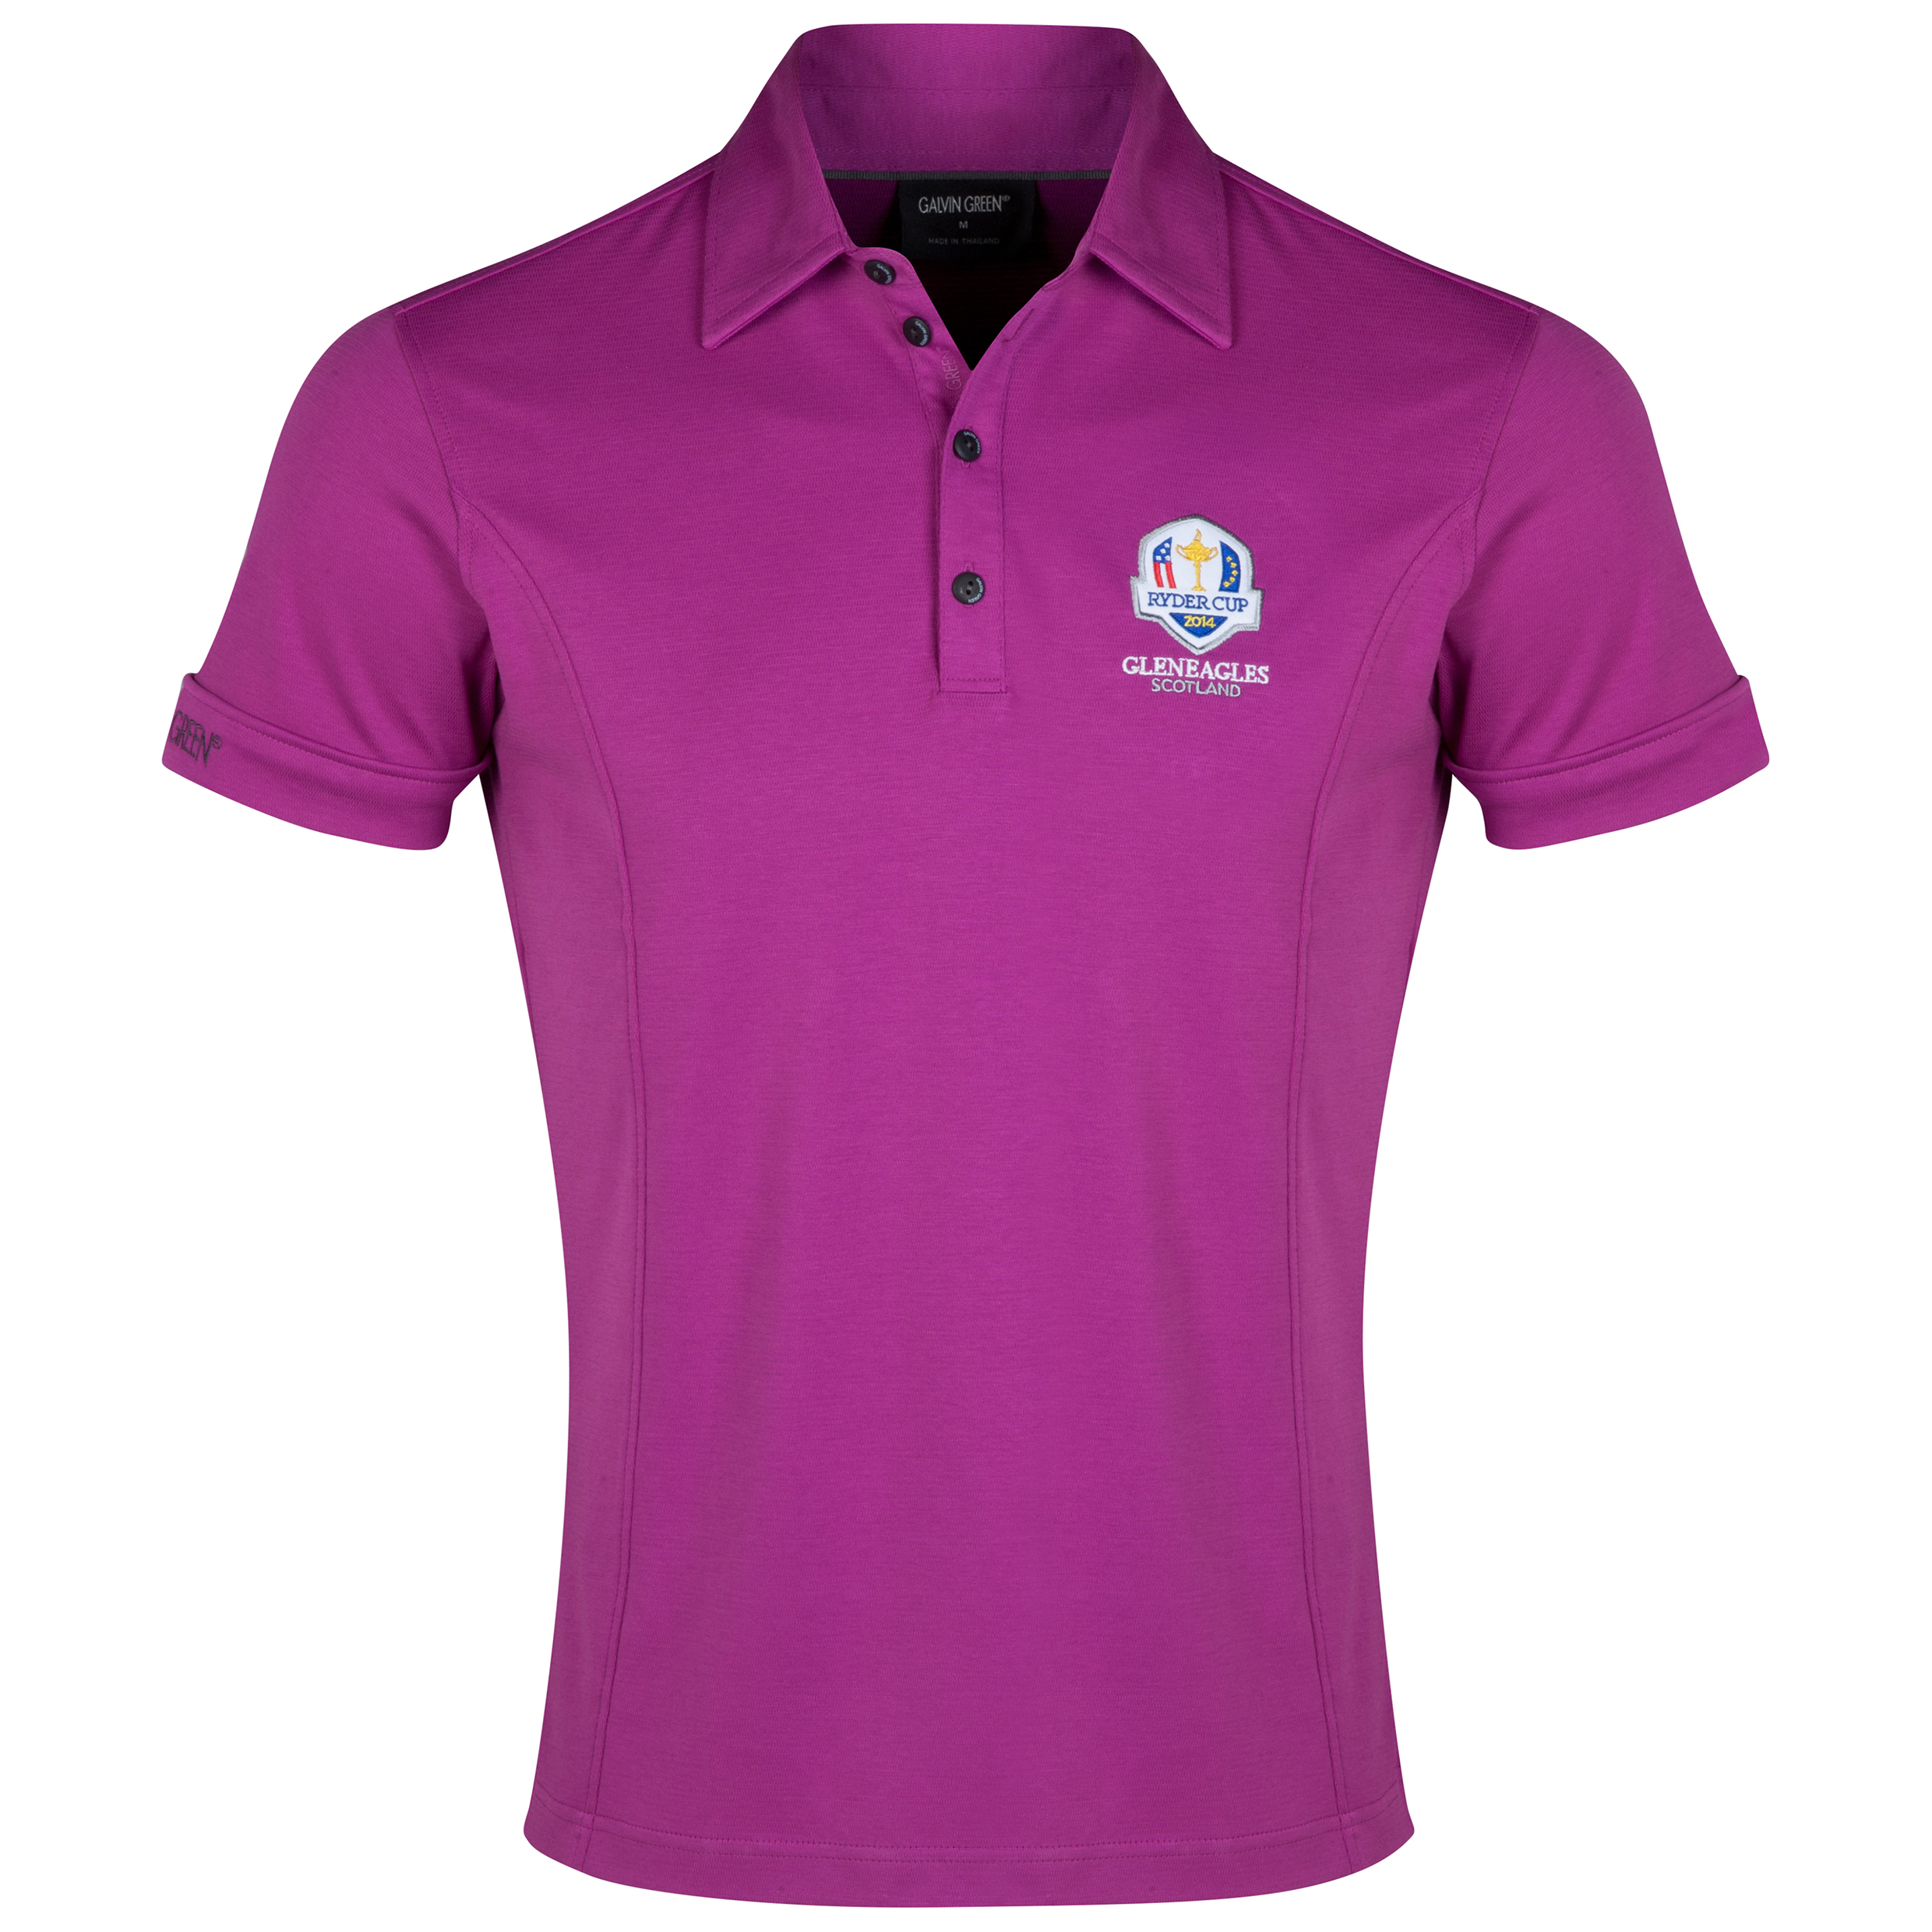 The 2014 Ryder Cup Galvin Green Mark Polo Purple